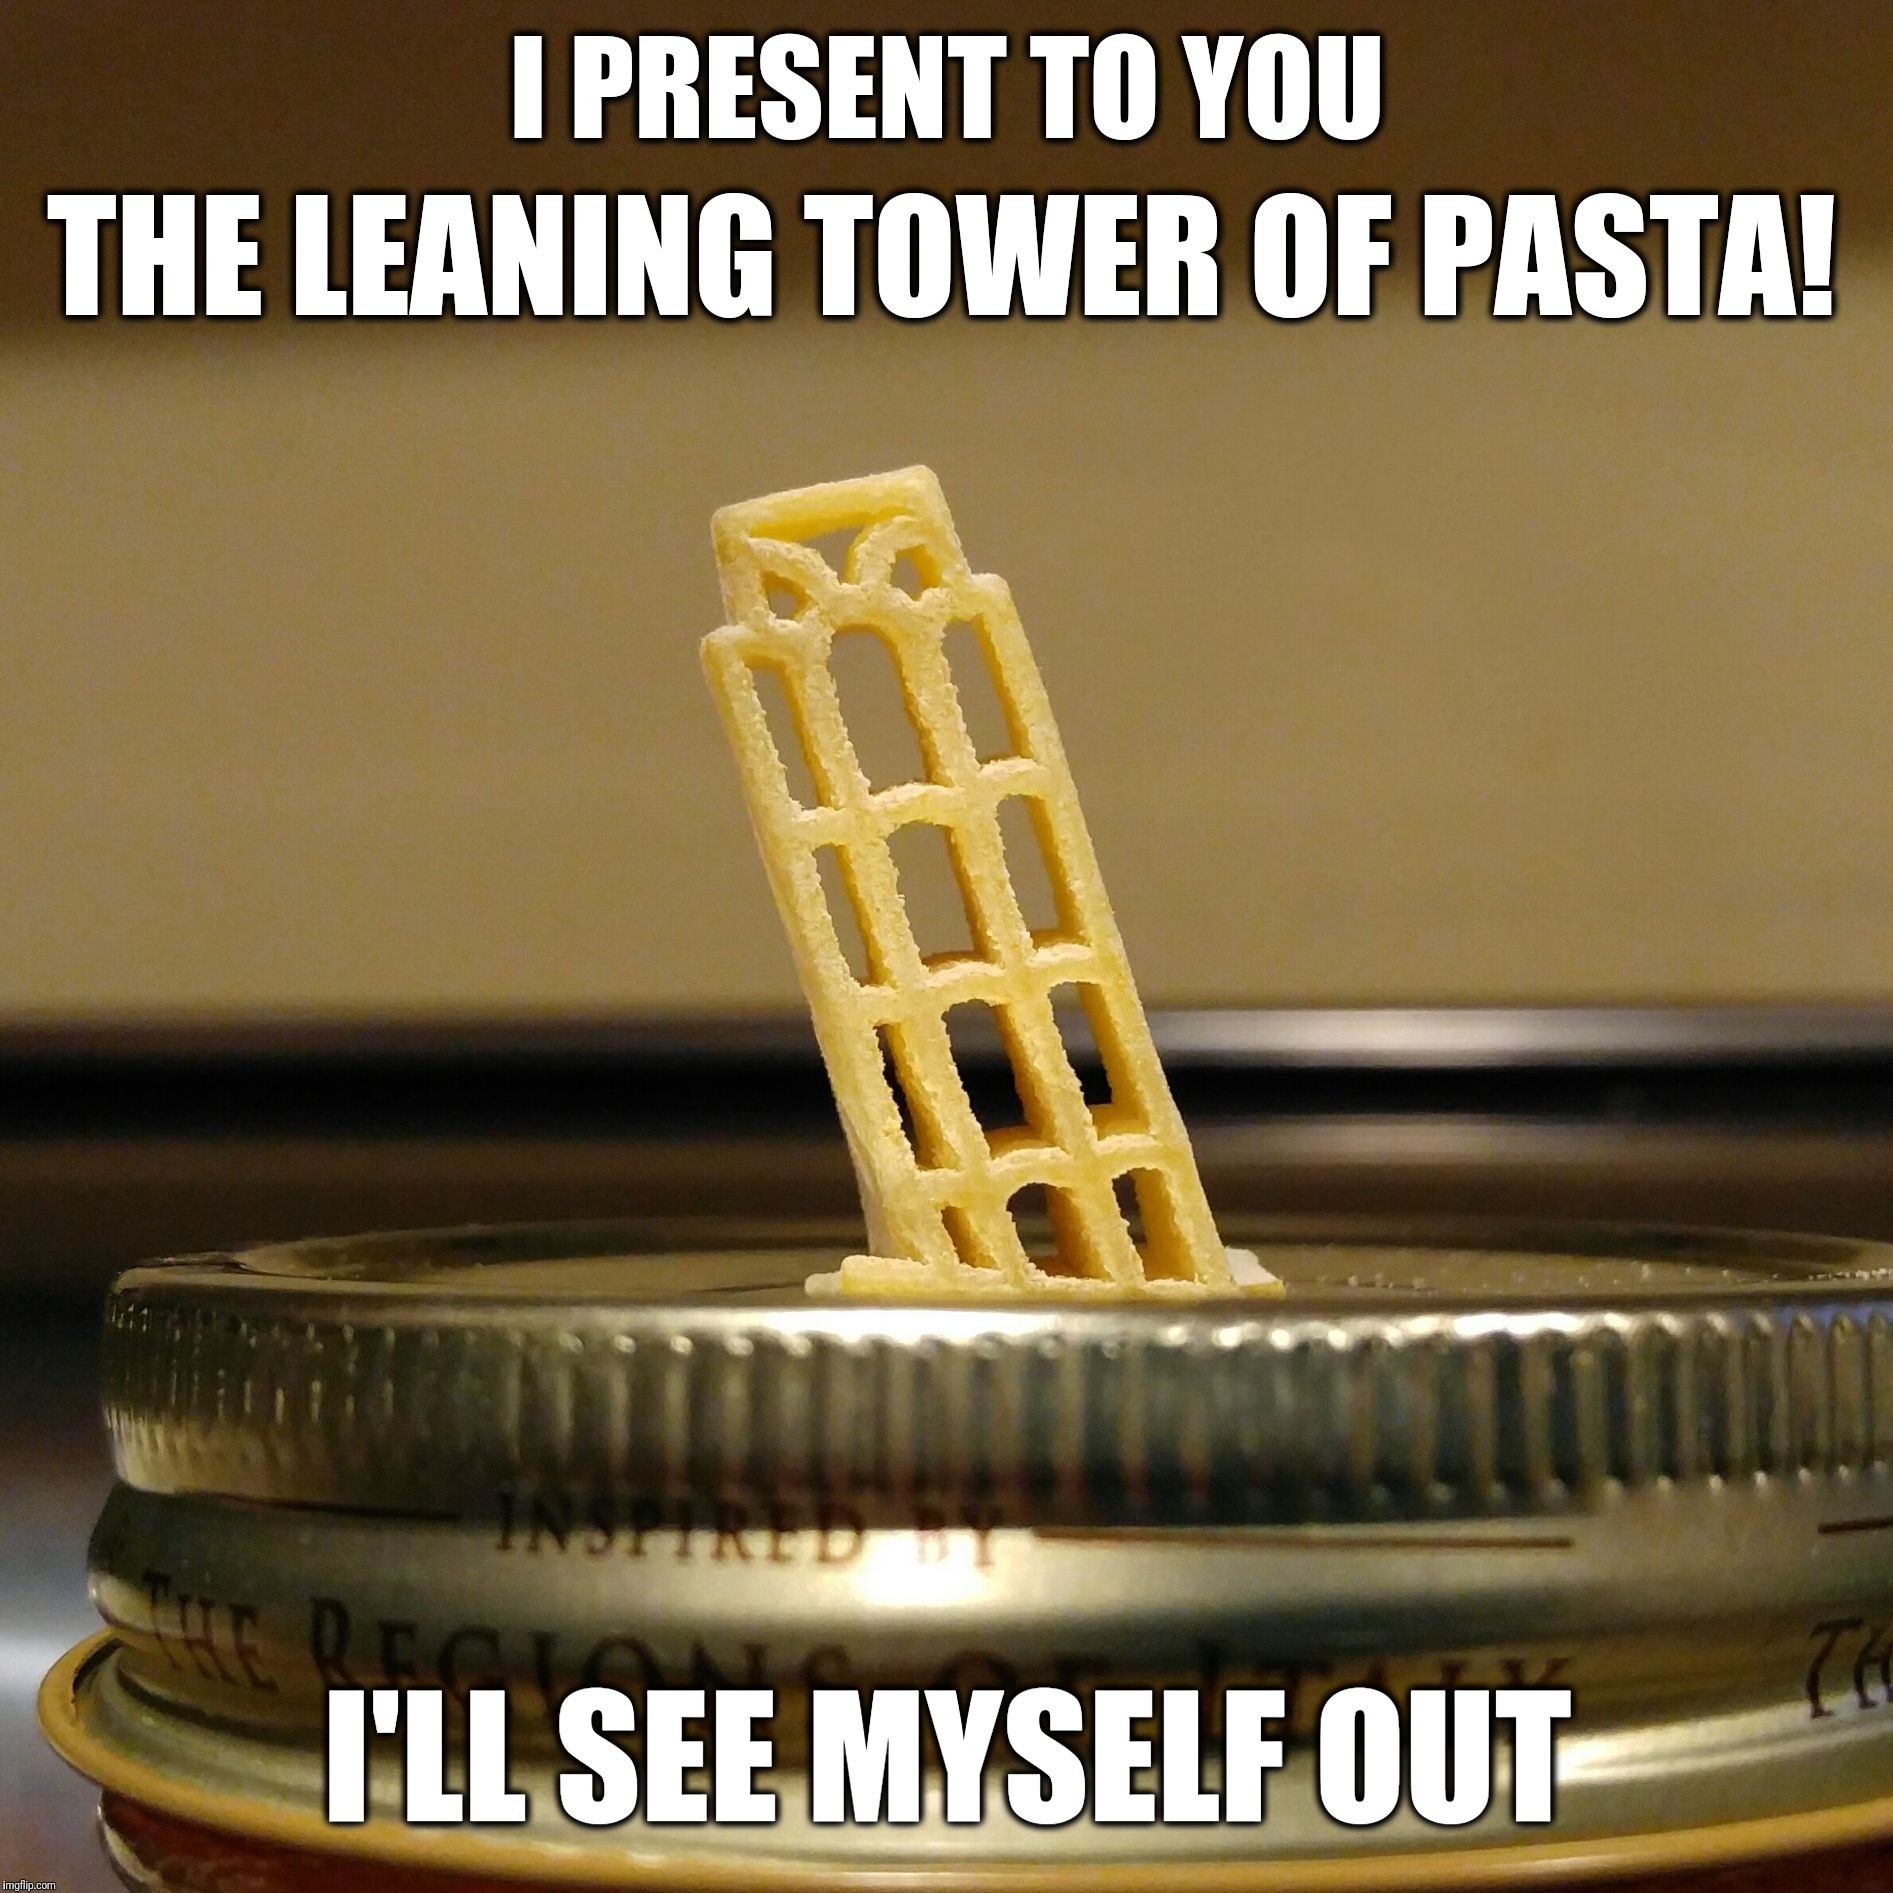 Leaning Tower of Pasta | I PRESENT TO YOU I'LL SEE MYSELF OUT THE LEANING TOWER OF PASTA! | image tagged in leaning tower of pasta,funny,memes,italy,pasta,leaning tower of pisa | made w/ Imgflip meme maker